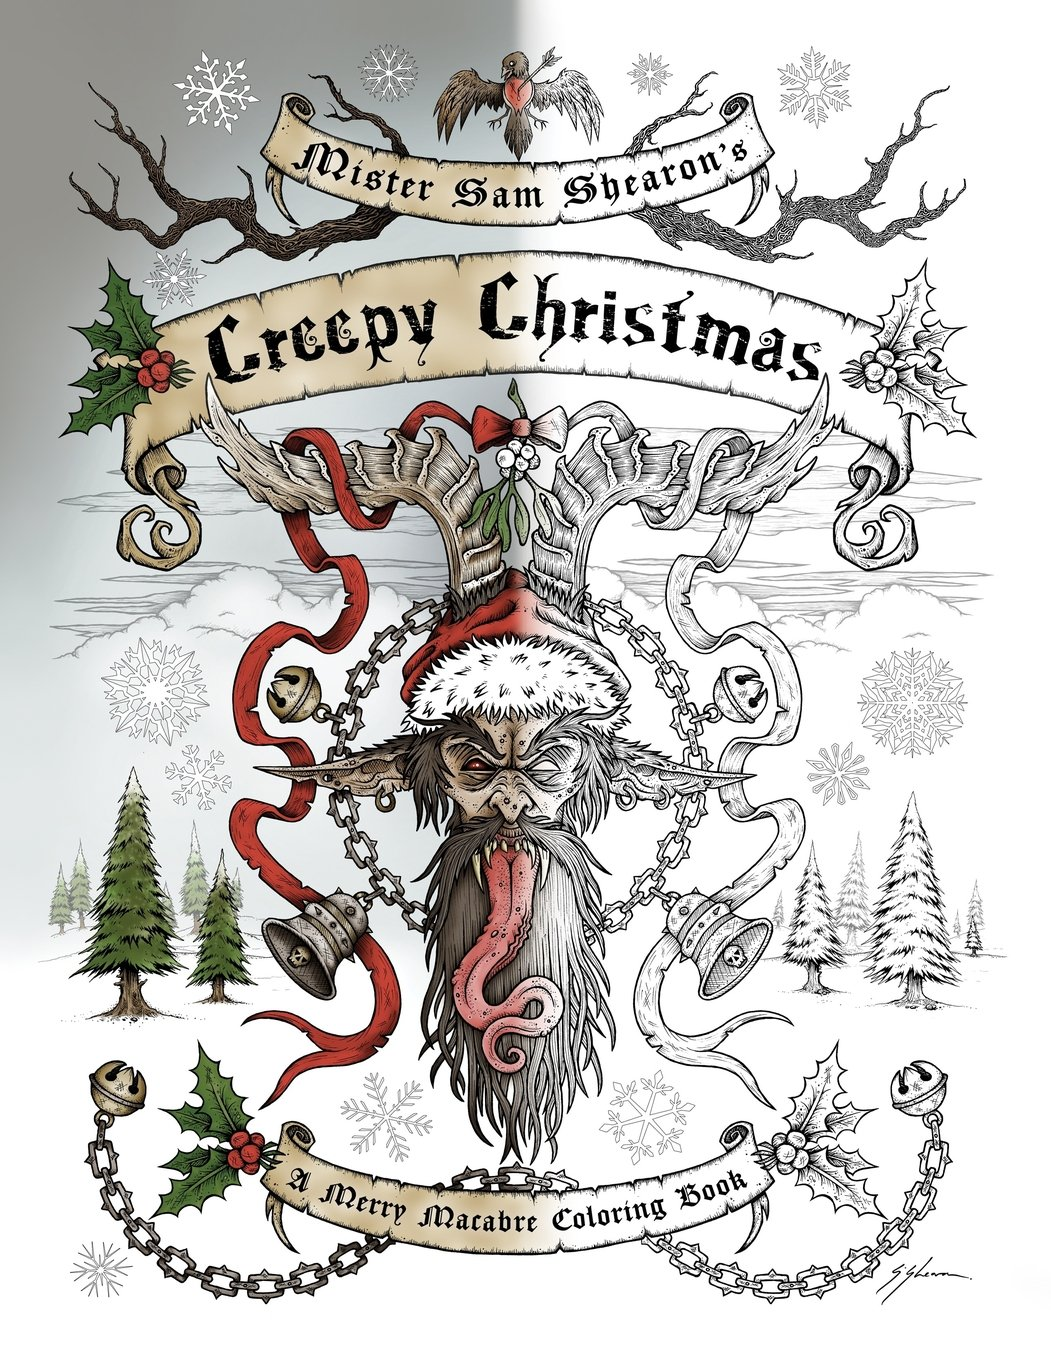 Amazon Com Mister Sam Shearon S Creepy Christmas A Merry Macabre